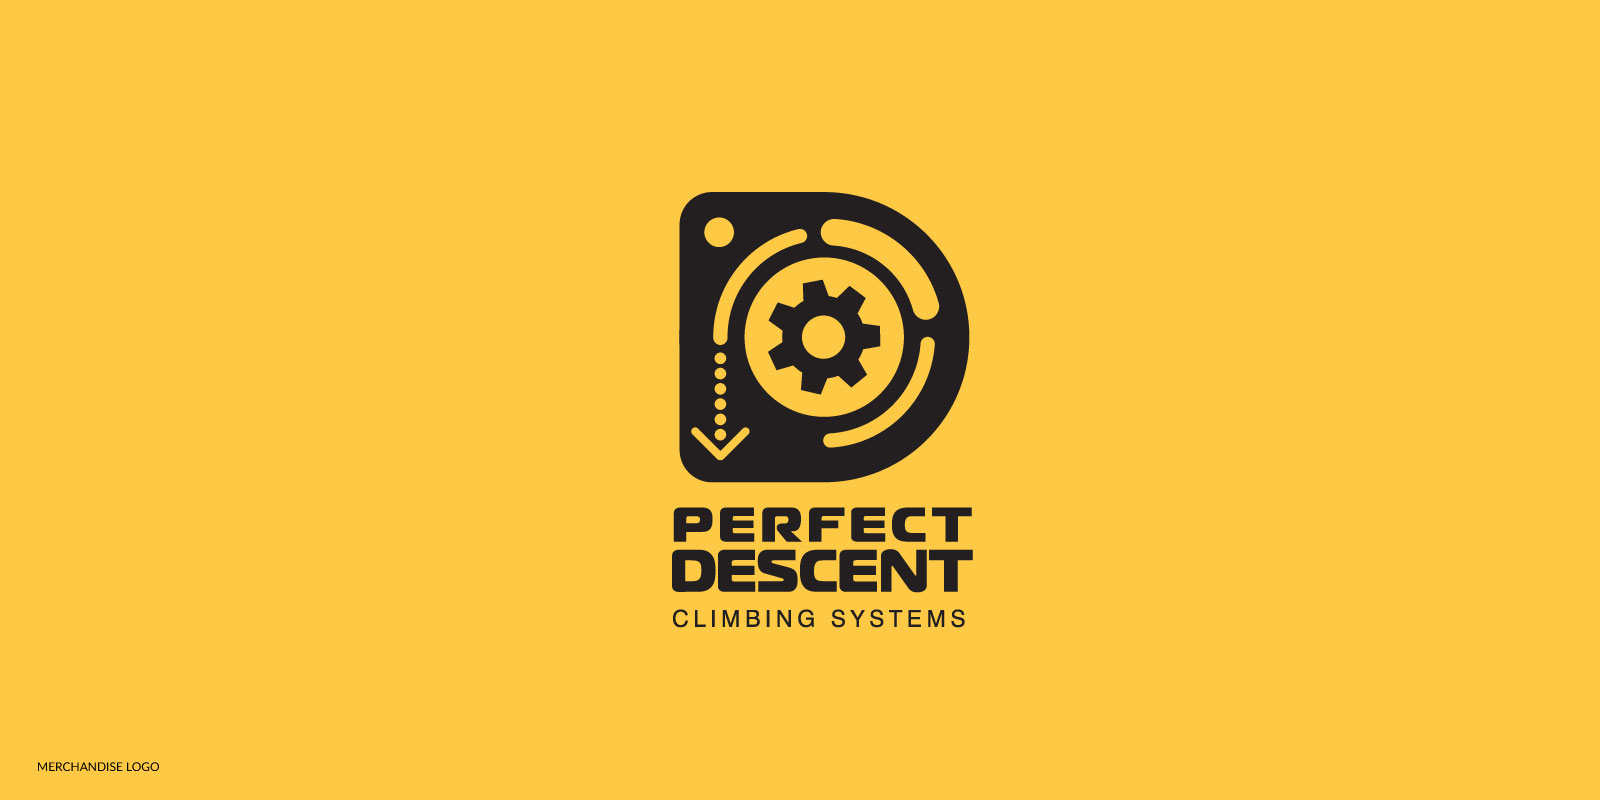 Perfect Descent D gear logo in black on a yellow background